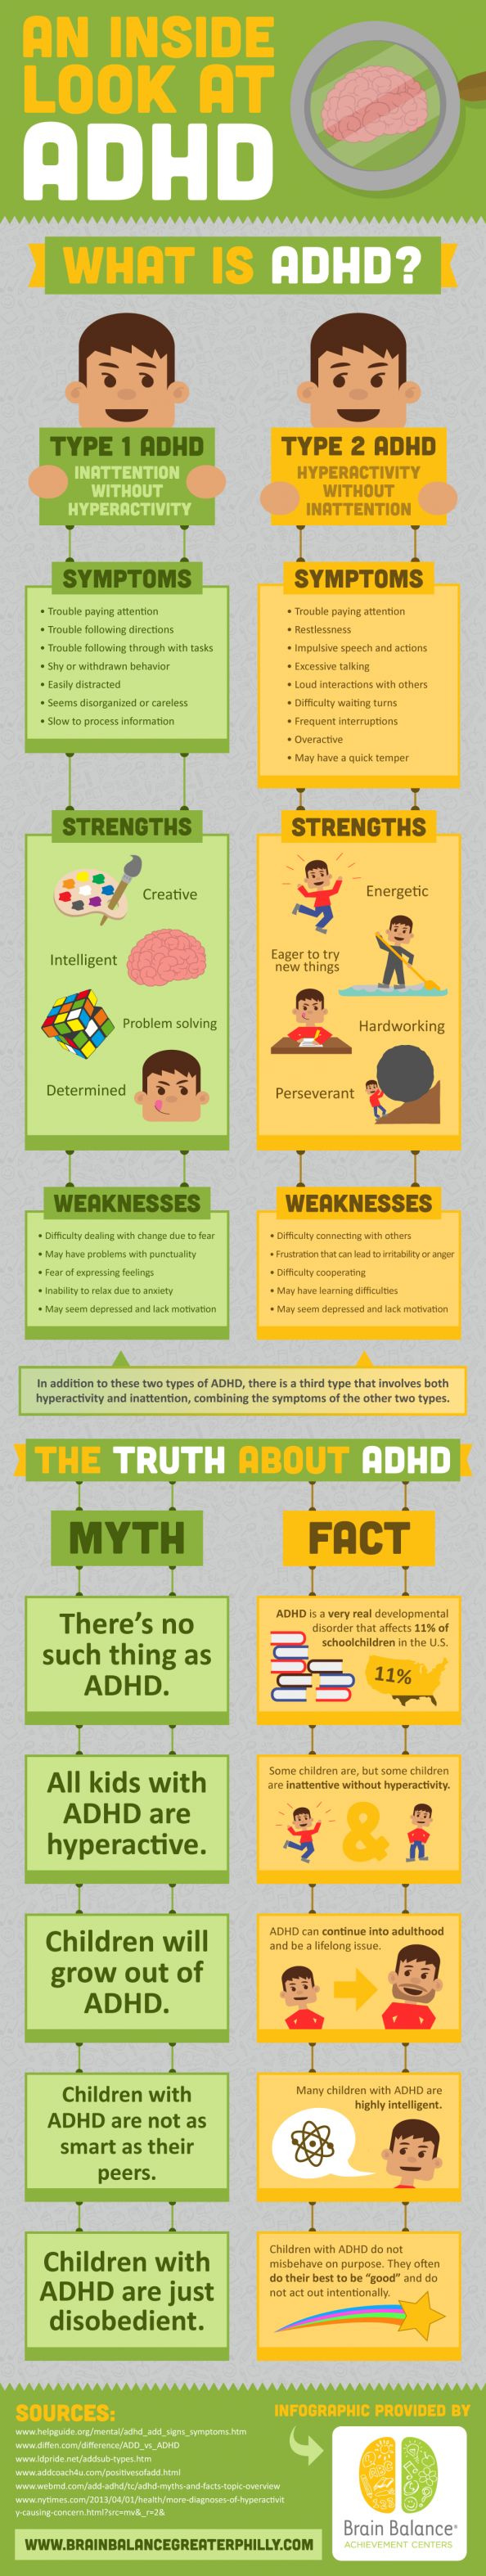 An Inside Look at ADHD Infographic  - Pinned by @PediaStaff – Please Visit  ht.ly/63sNt for all our pediatric therapy pins